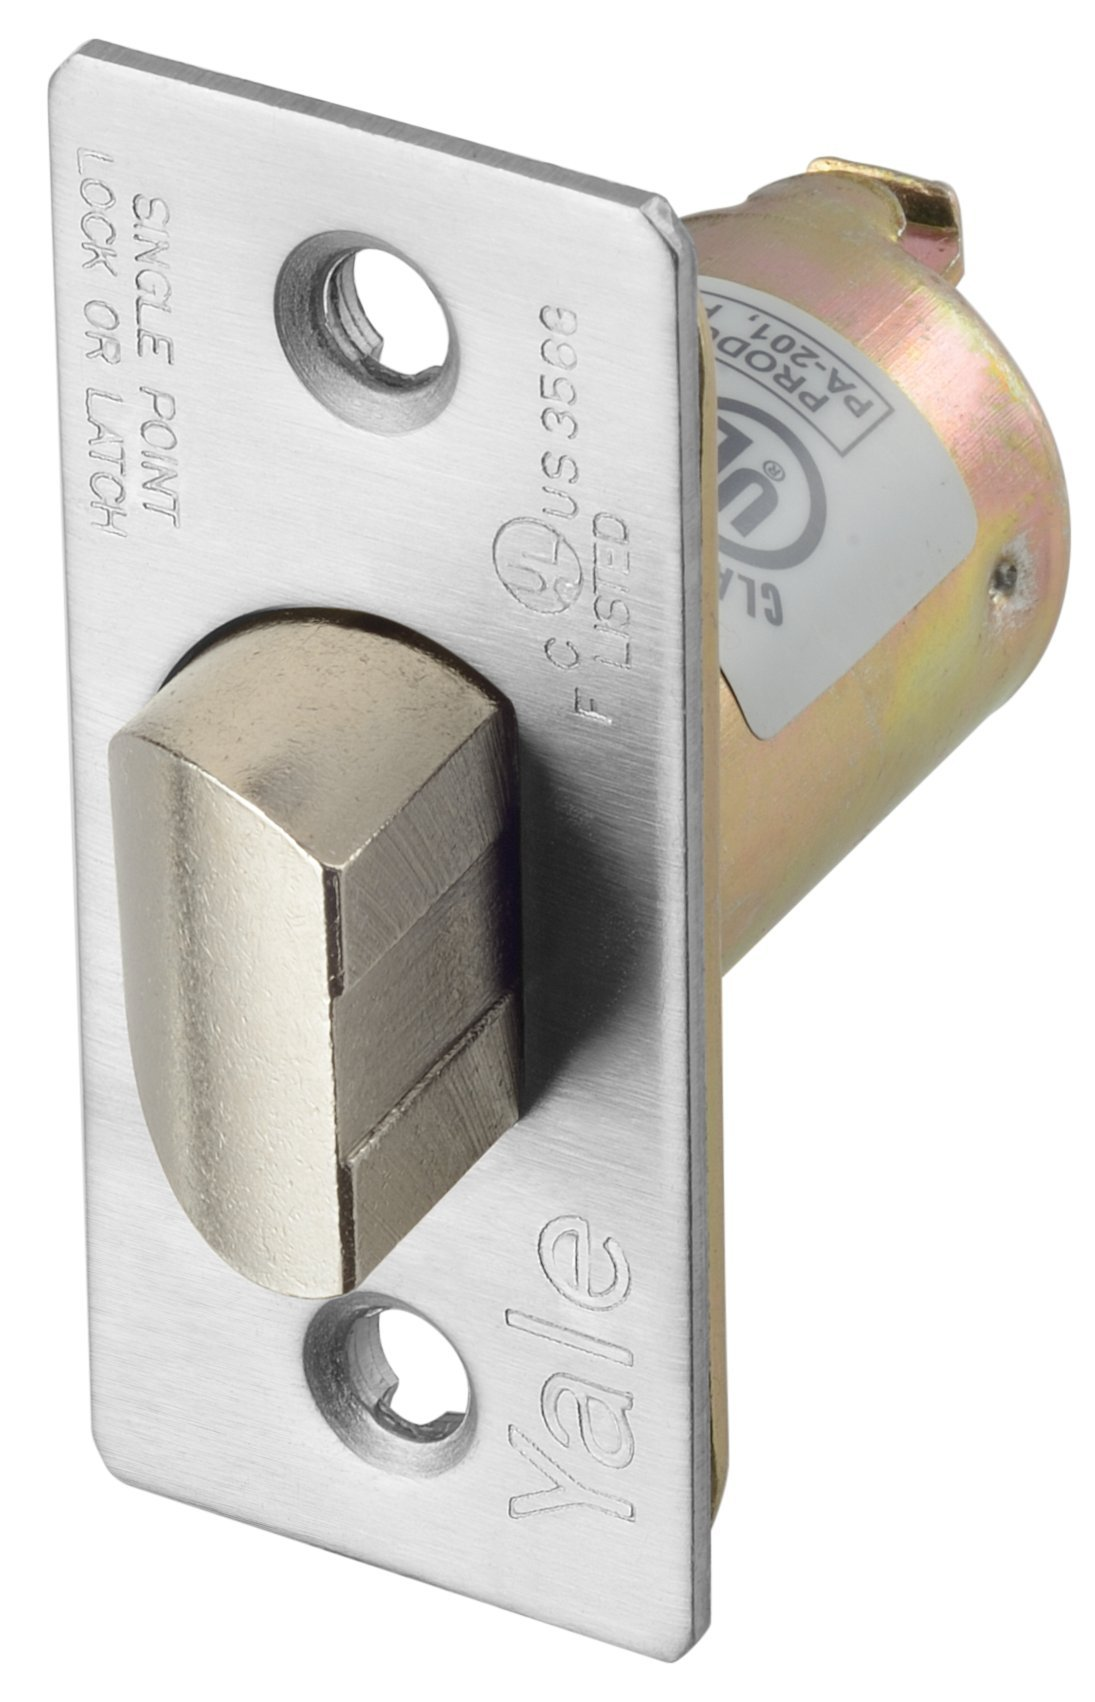 Yale MCP238 PLLTCH 2-3/8 X 626 Latch Bolt, Plain Latching, 2 3/8'' Backset, 626 Satin Chrome